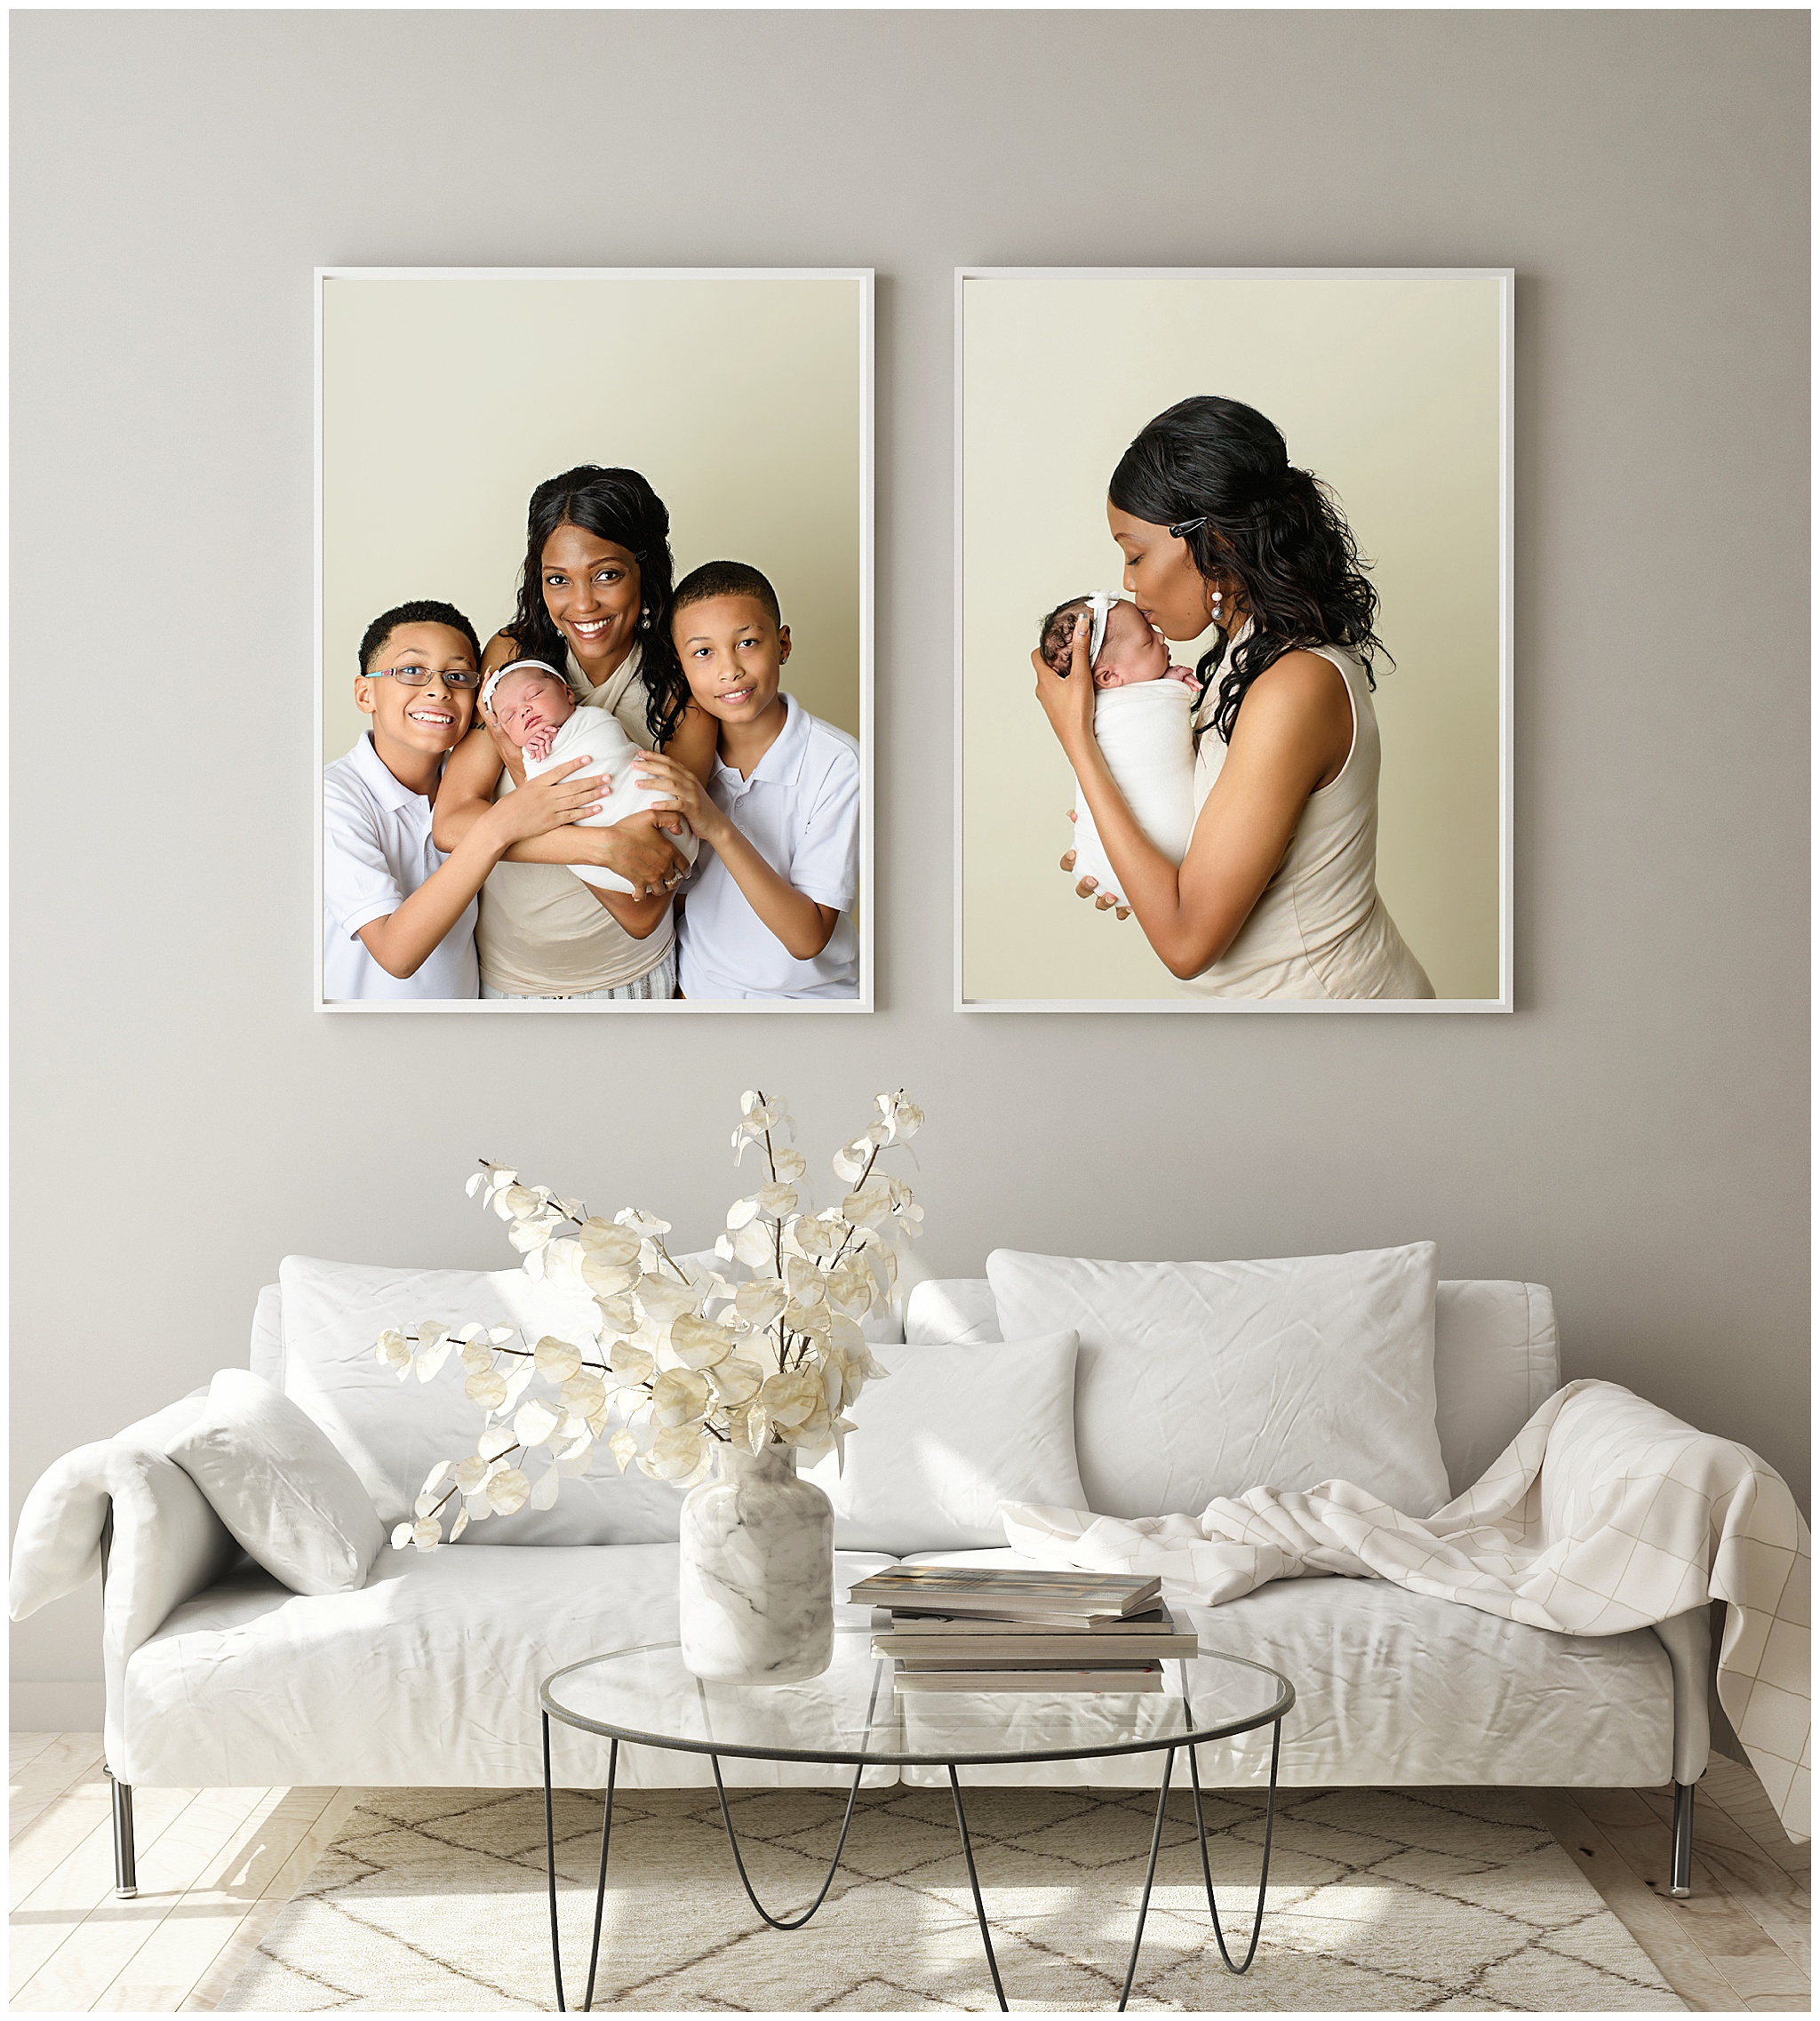 wall art display over couch ordering appointment